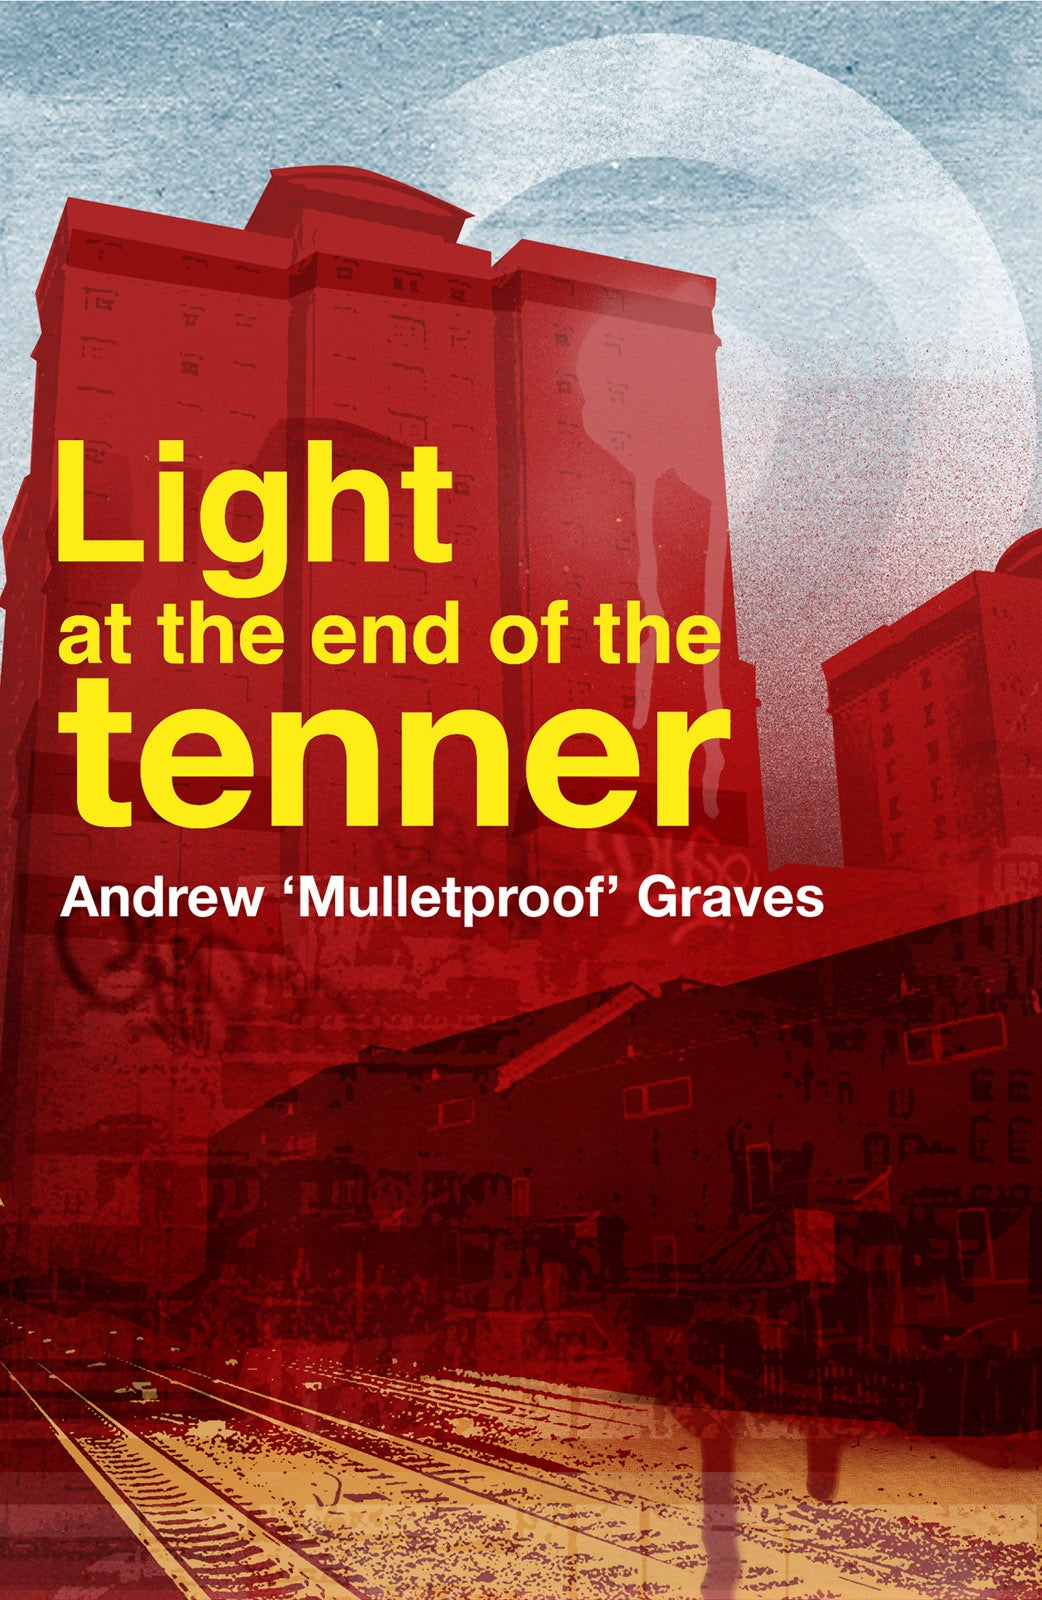 Image of Light at the End of the Tenner by Andrew Graves